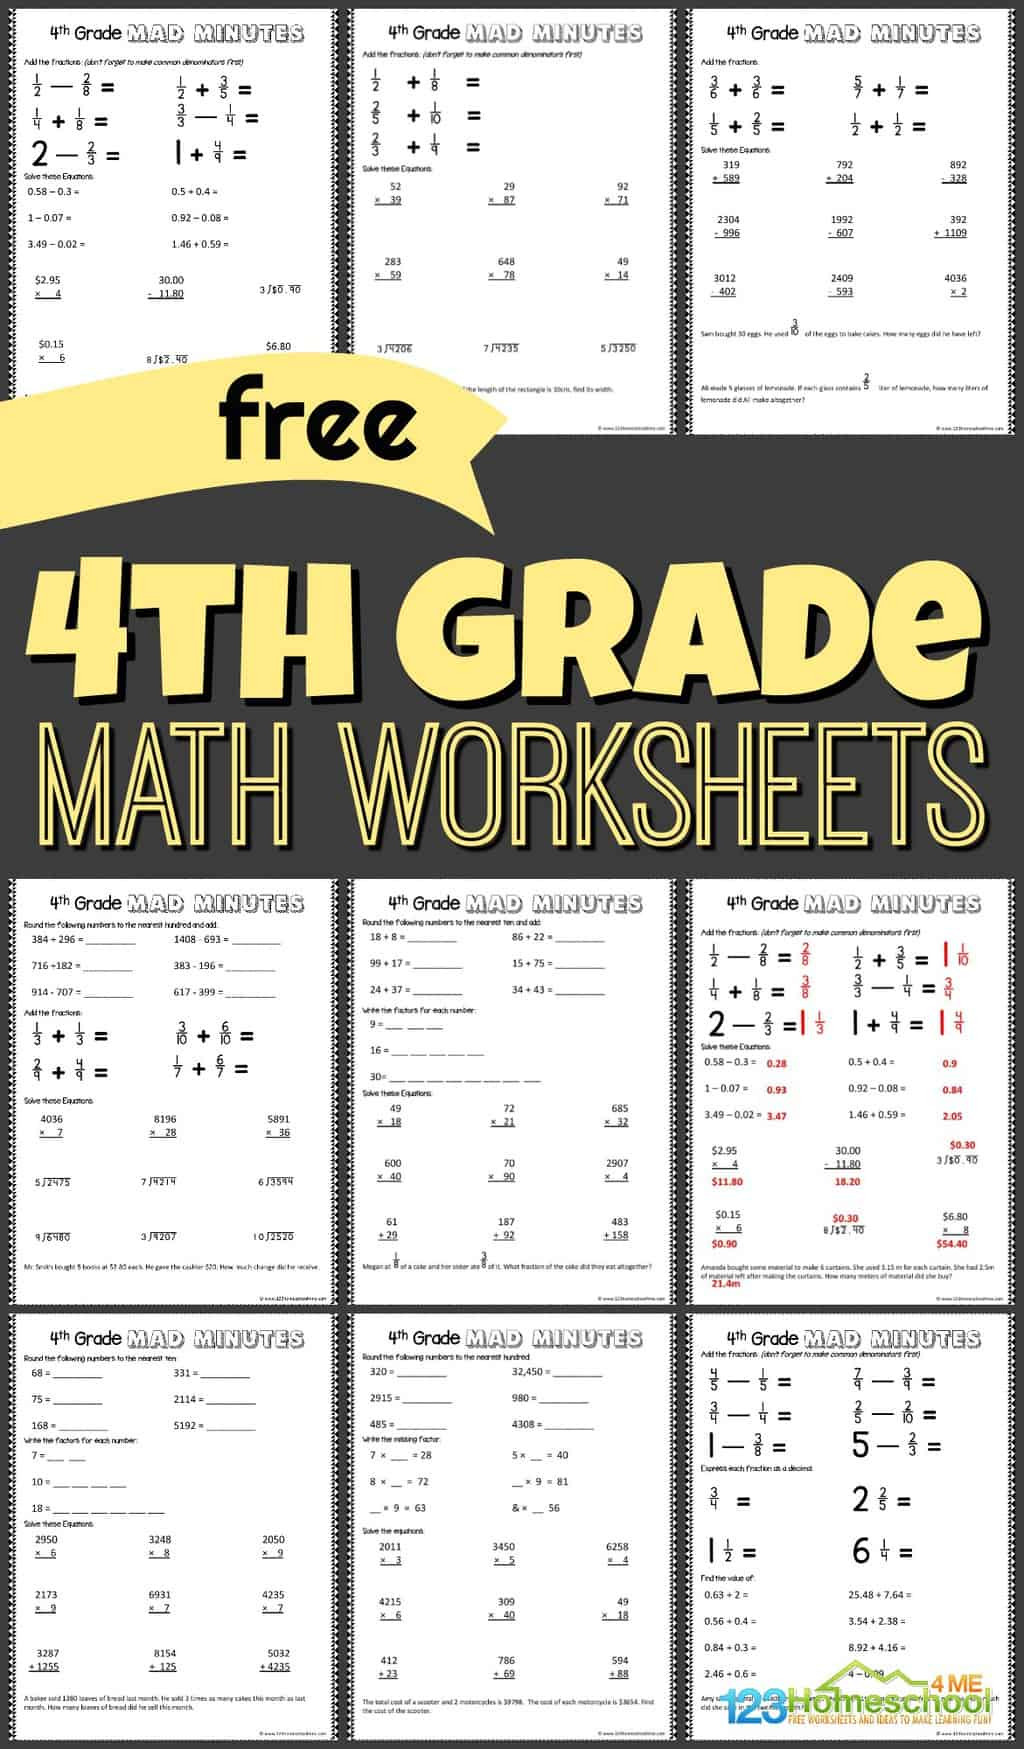 Kitchen Math Worksheets Free 4th Grade Math Worksheets for Fourth Graders to